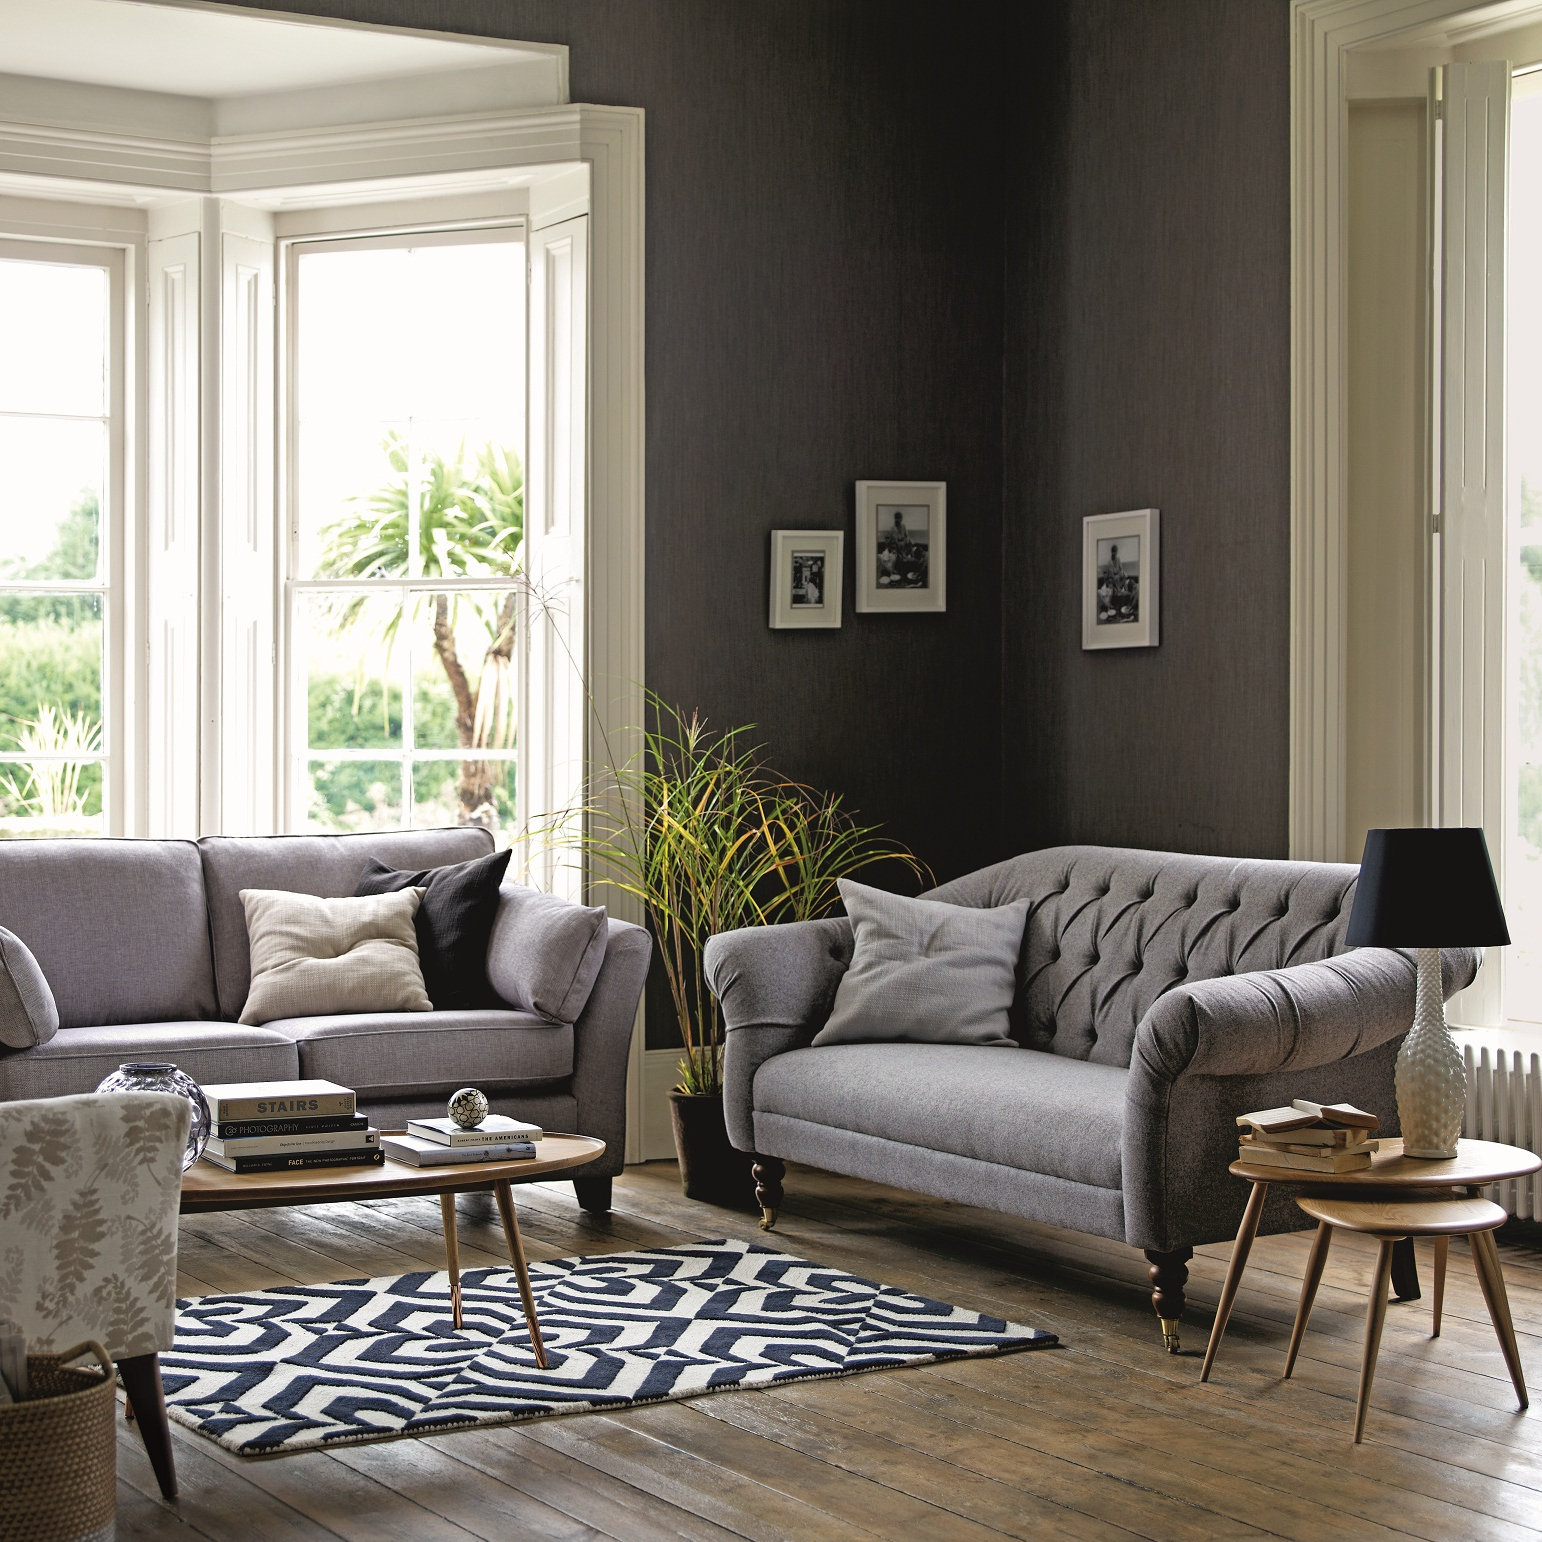 Living Room Colours To Match Grey Sofa Sofas For A Small Decorate Your With Matching And Liven Up The Interior Patterned Rug